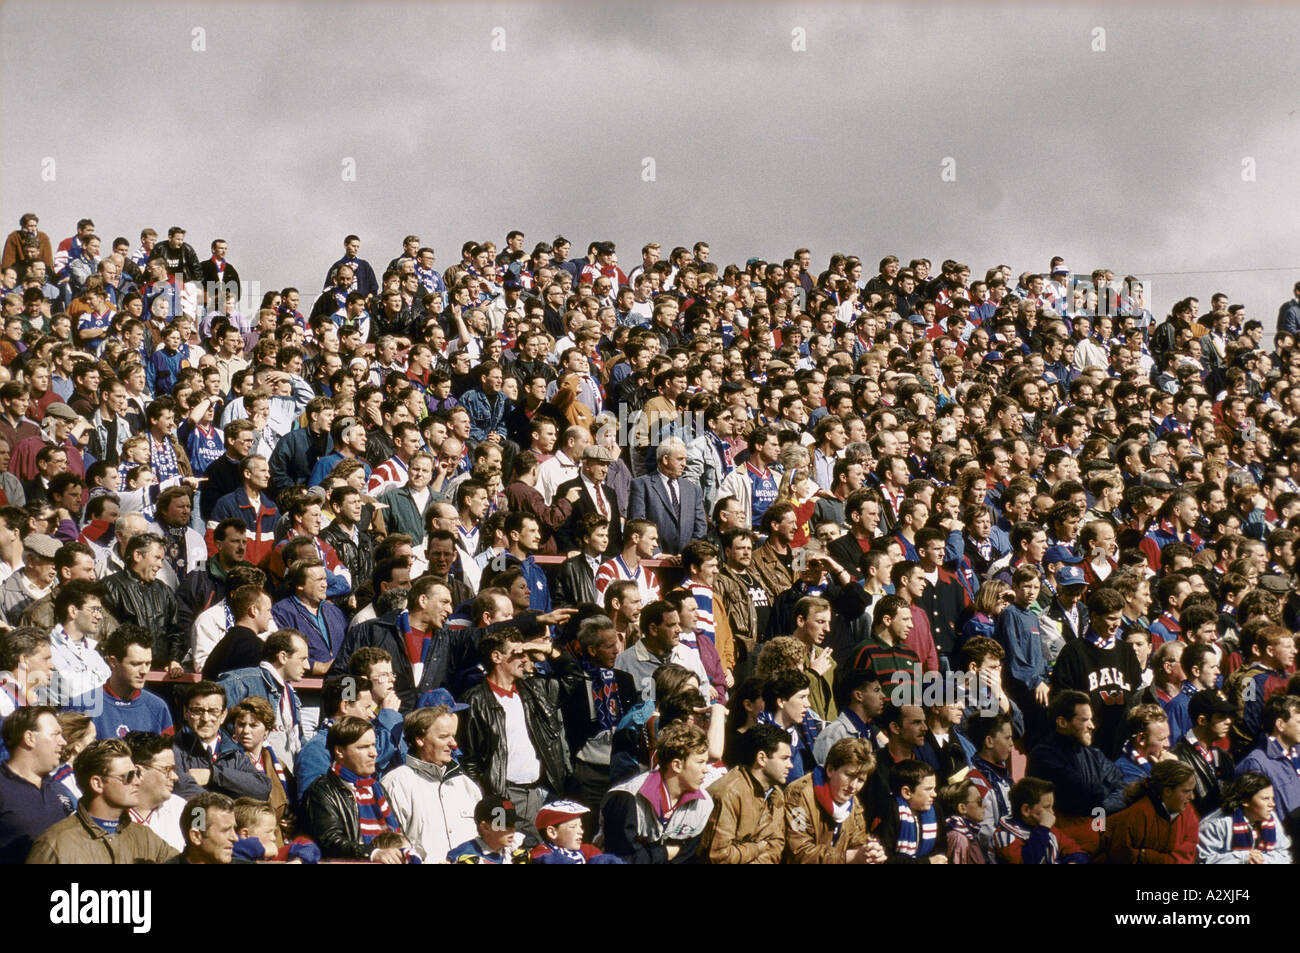 football supporters scotland rangers vs partick thistle glasgow 1992 - Stock Image